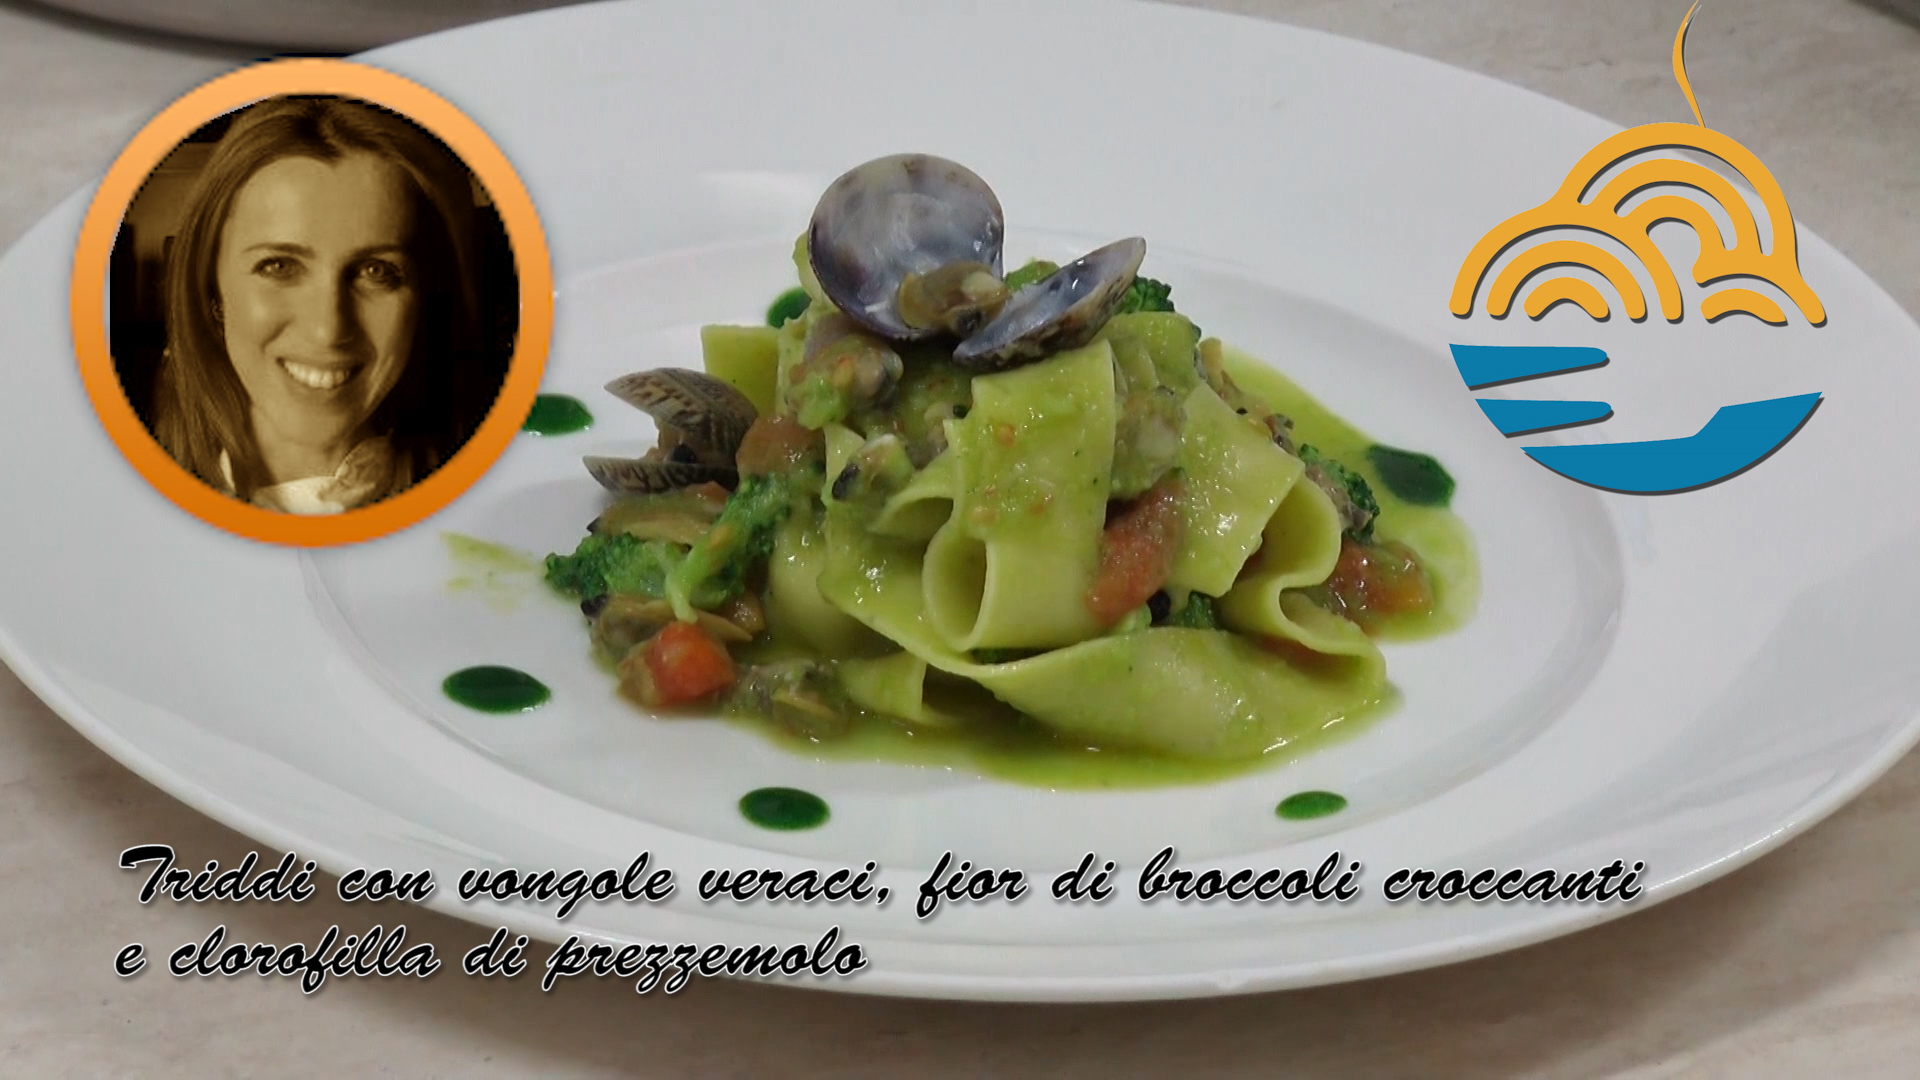 Mangia colorato life is food and food is life - Scuola di cucina a bari ...